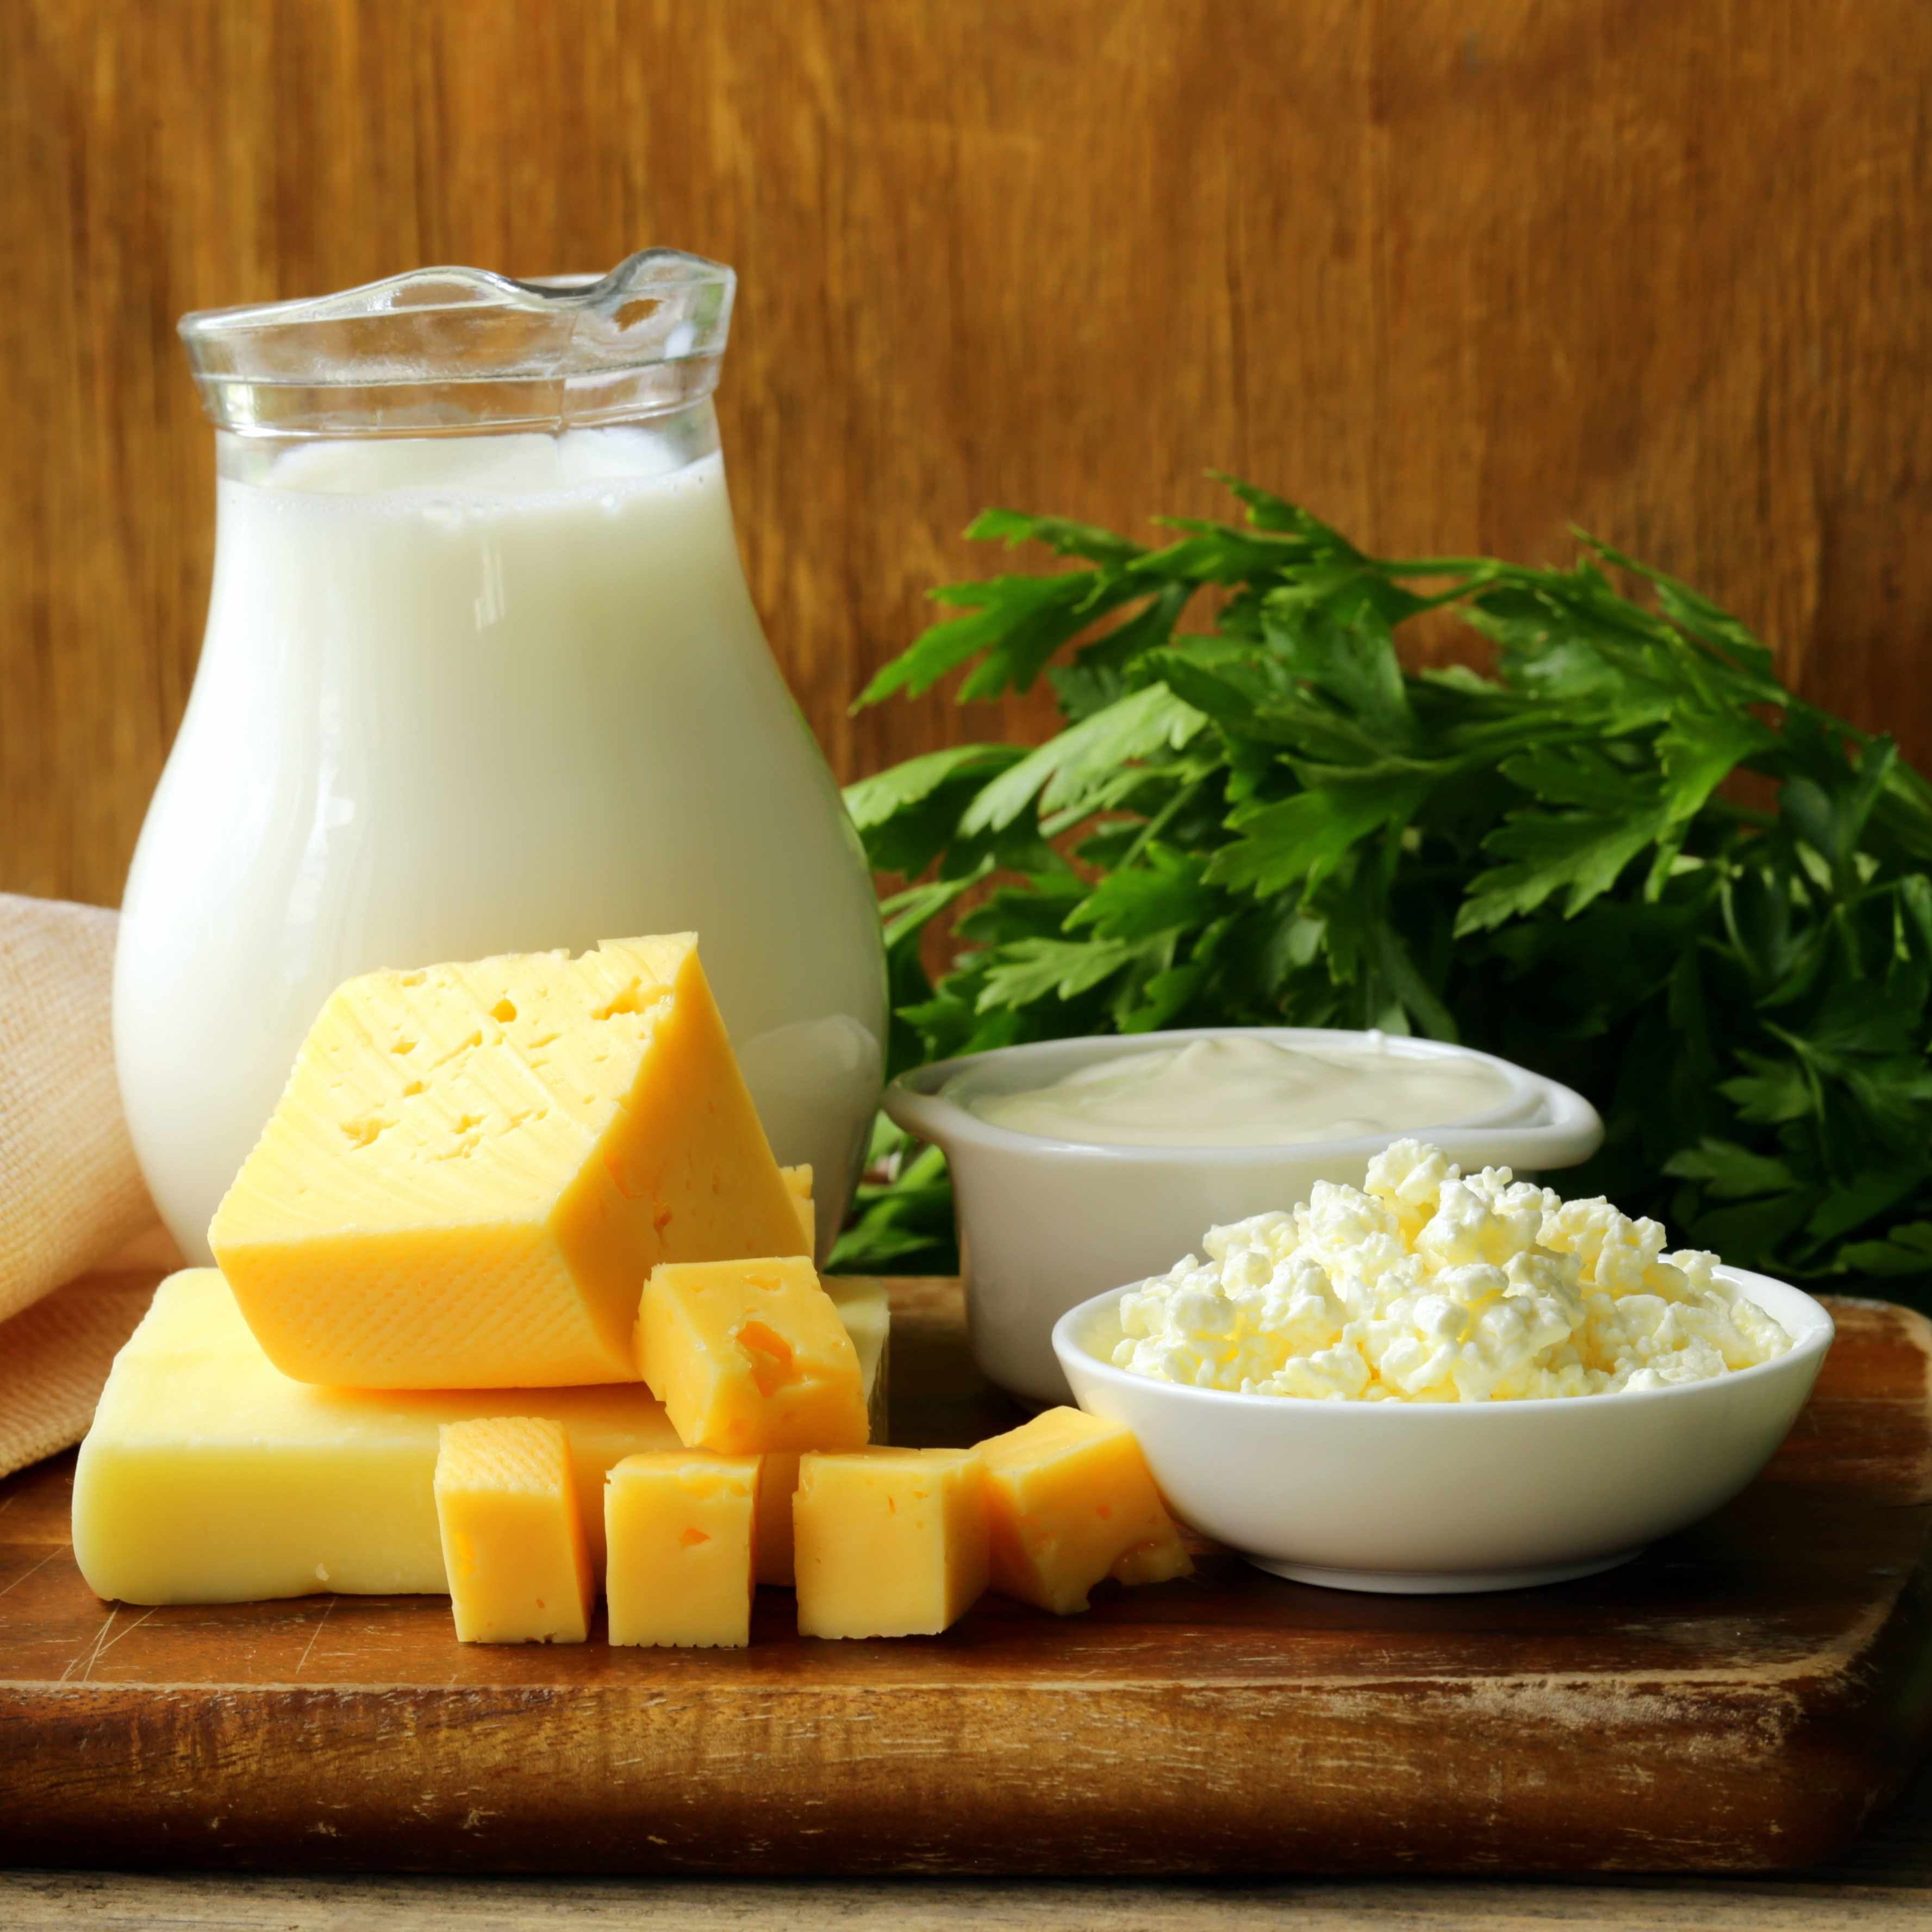 a still life of dairy products, including milk, cheese, sour cream and cottage cheese, on a wooden cutting board and with greens in the background